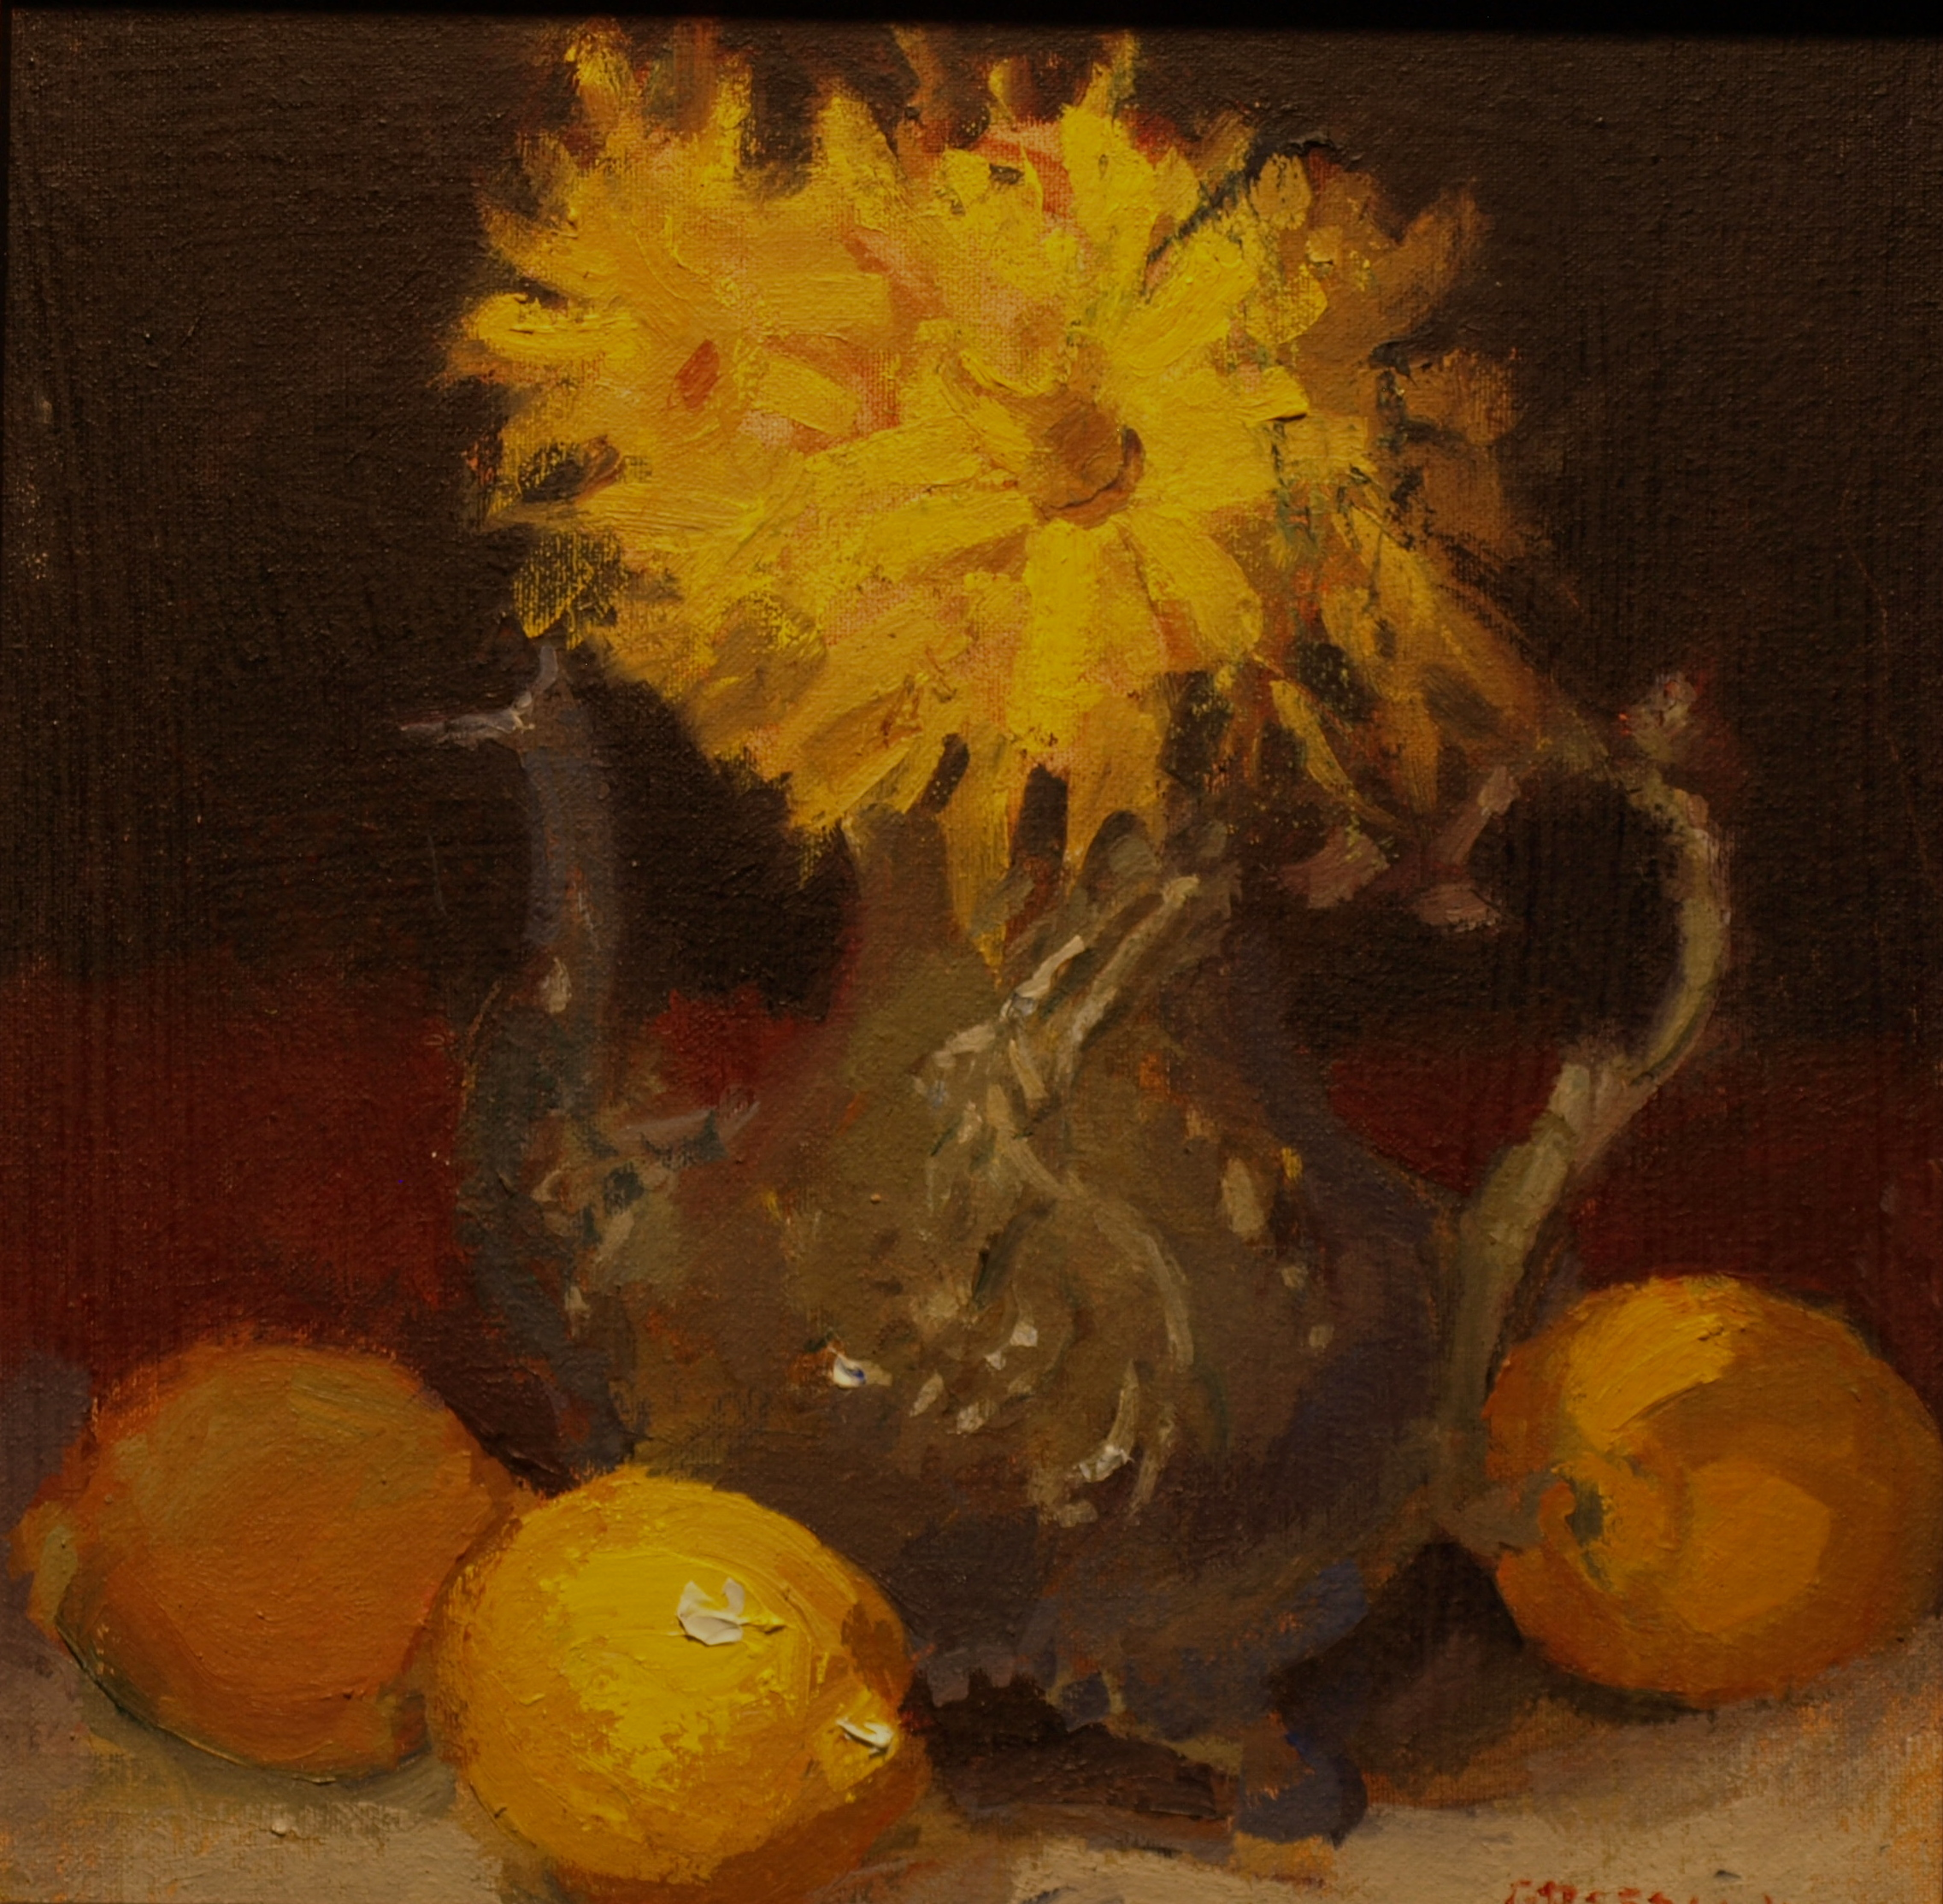 Silver Teapot, Oil on Canvas on Panel, 12 x 12 Inches, by Susan Grisell, $275